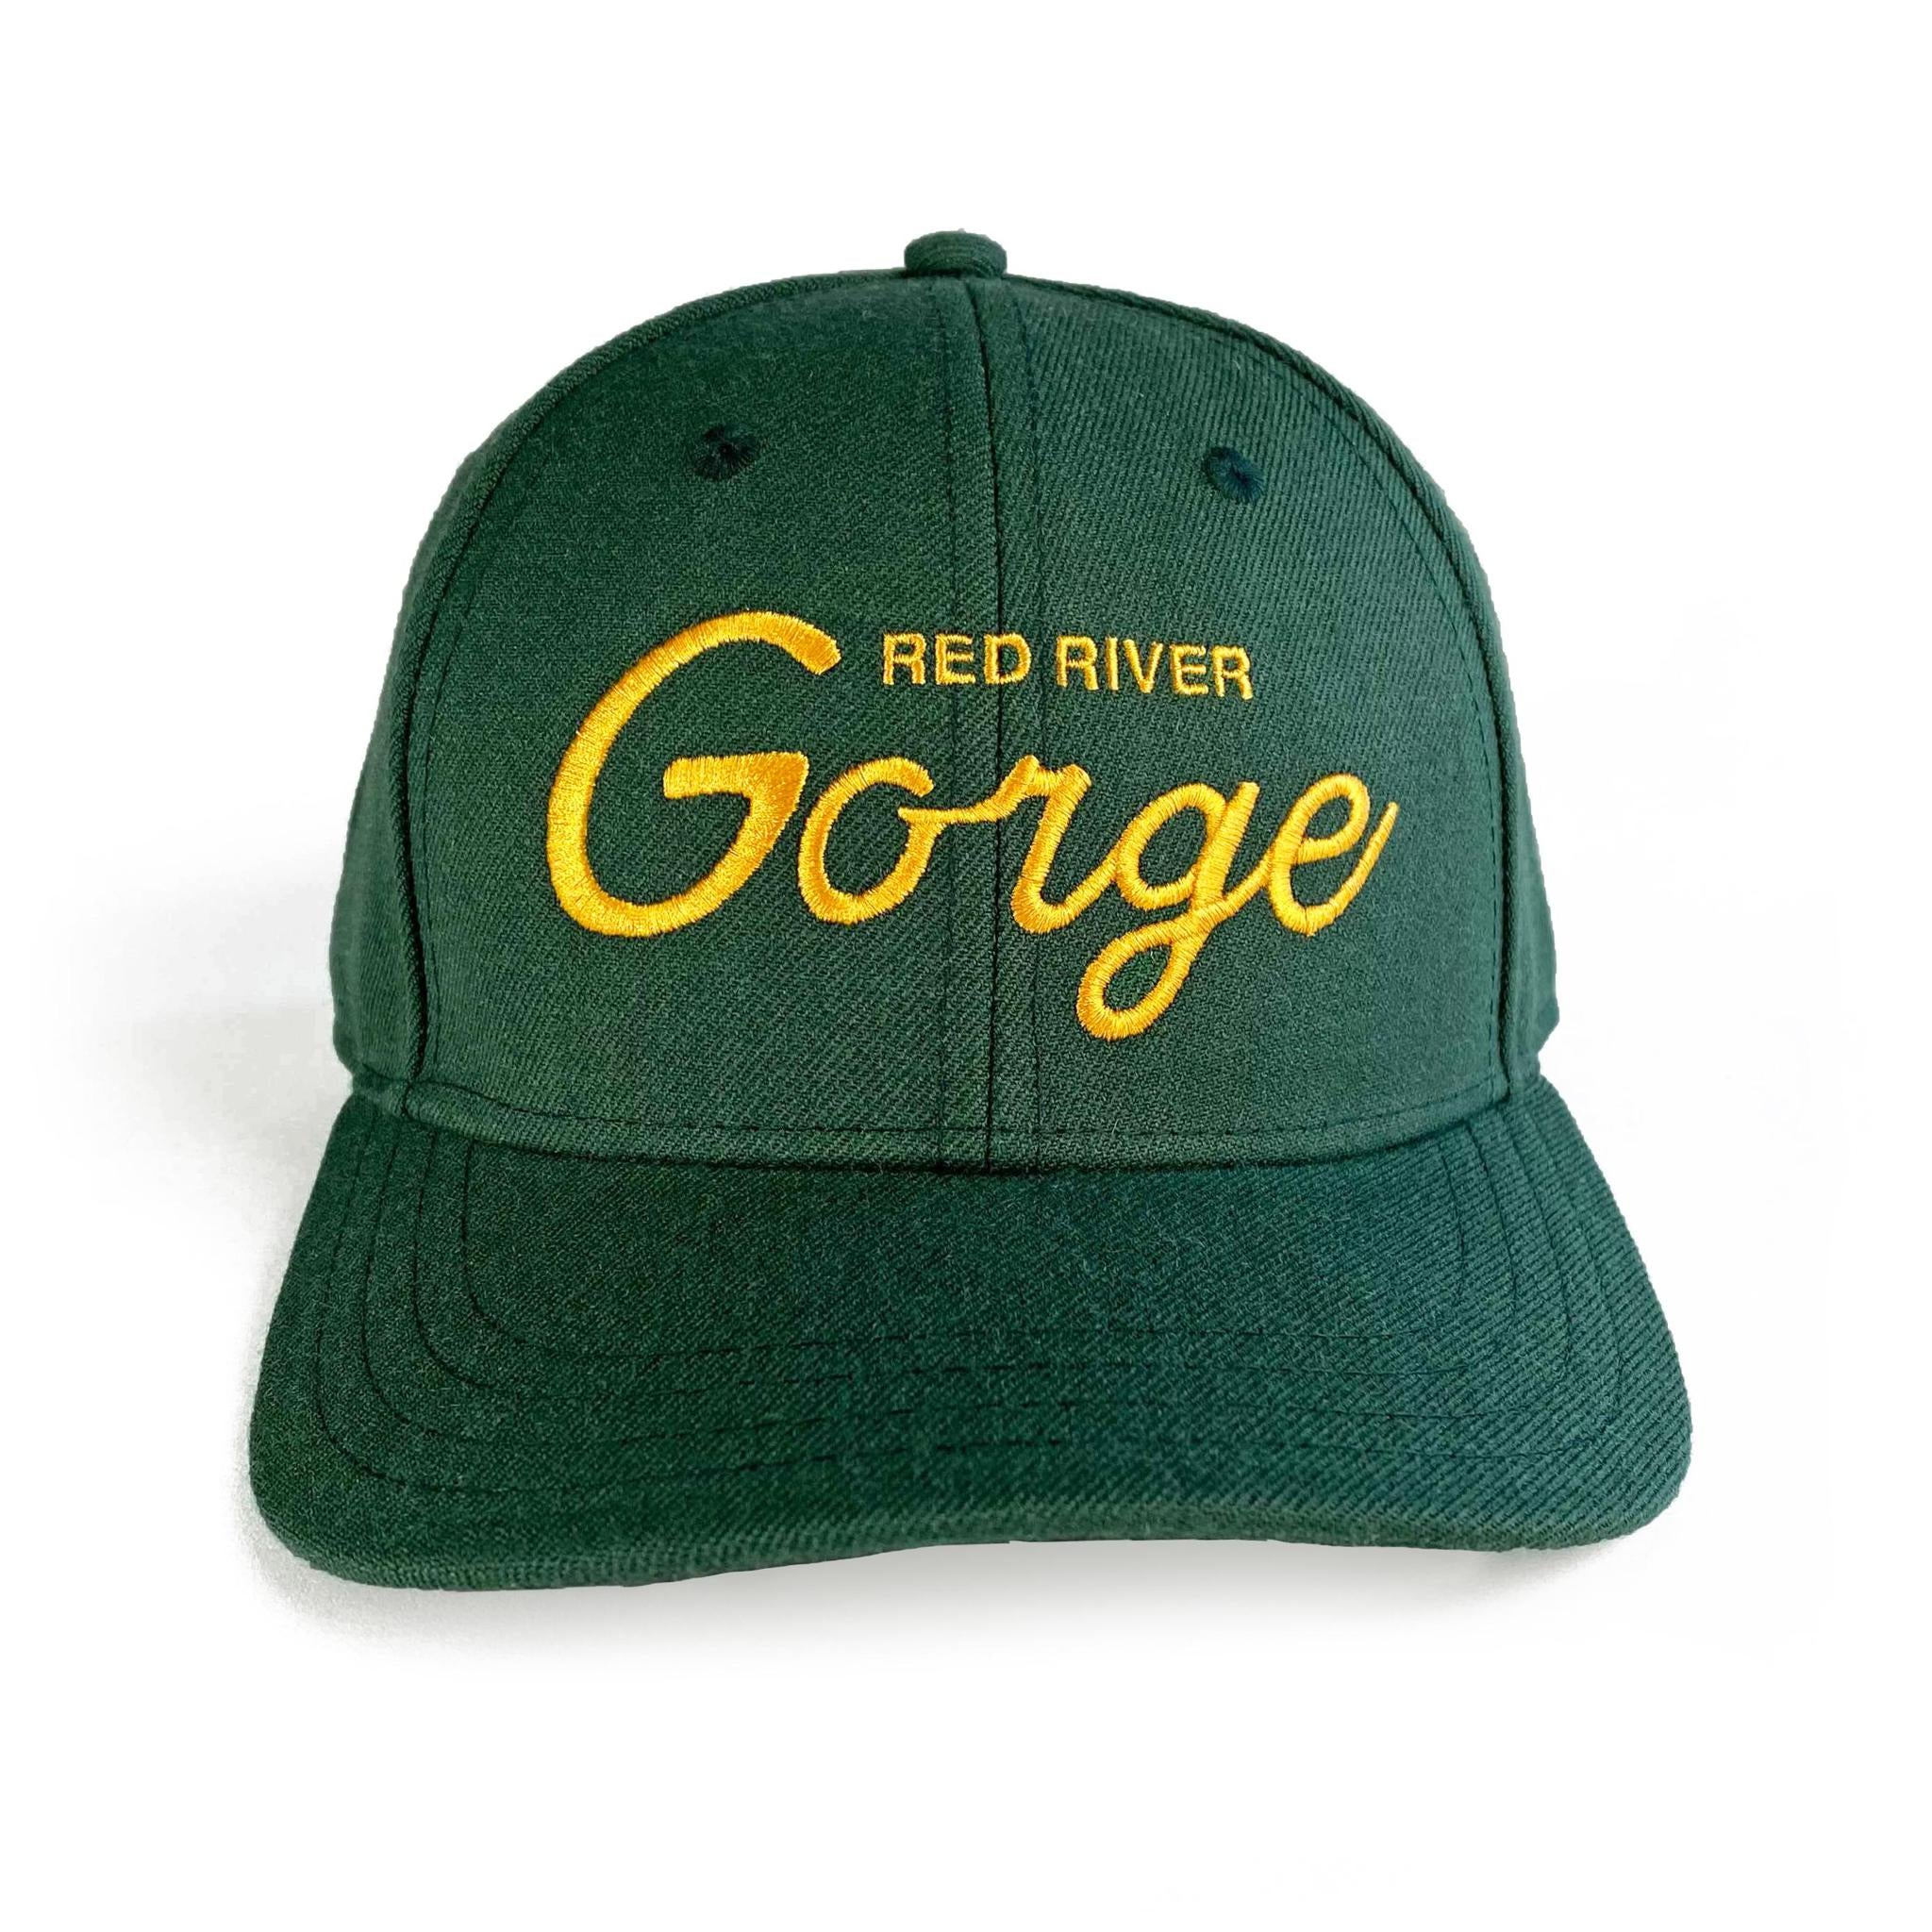 Red River Gorge Vintage Hat-Hat-KY for KY Store